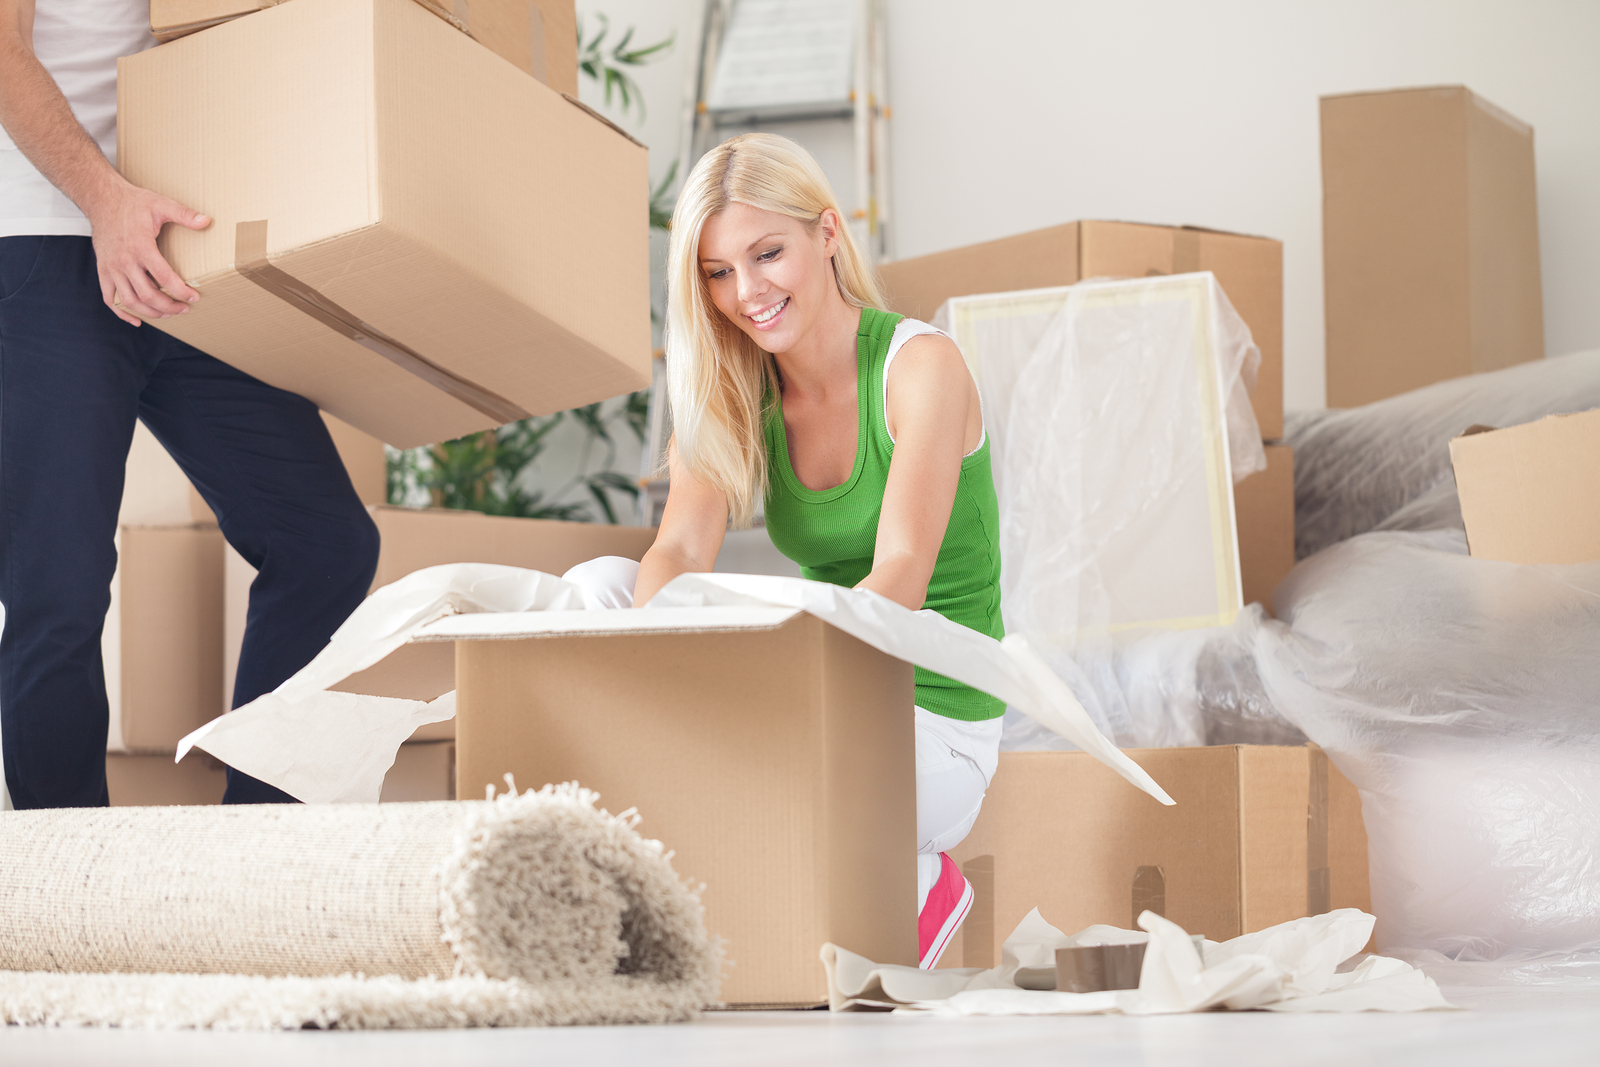 Need General Removals Advice? Why not Just Ask Us!